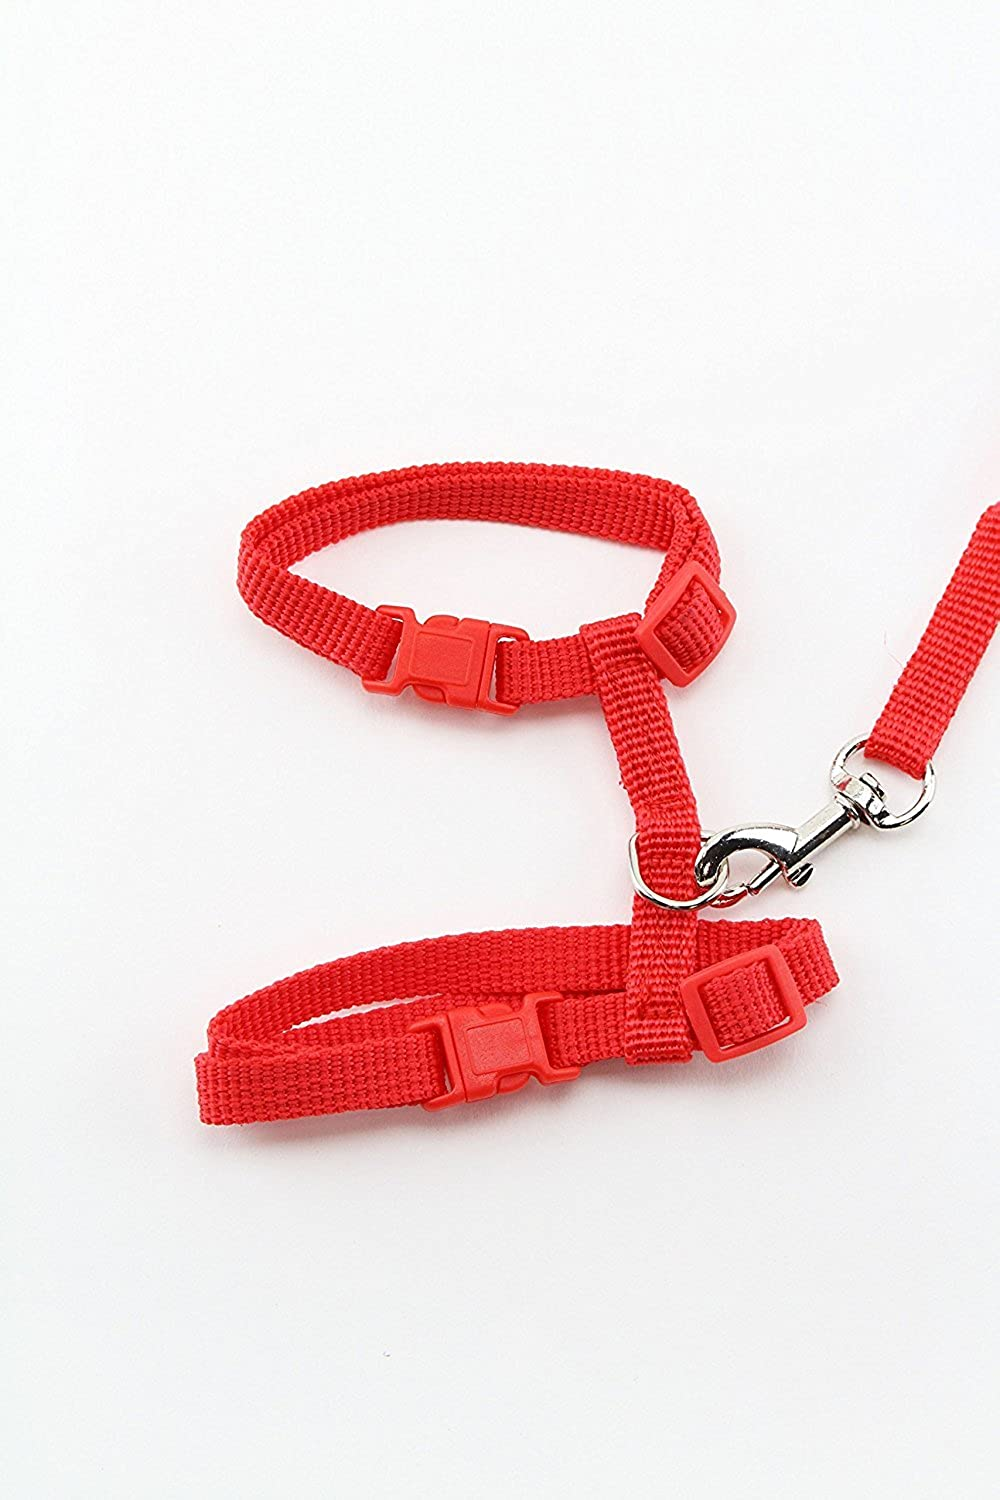 Midlee Adjustable Nylon Cat Harness & Leash by (Red)